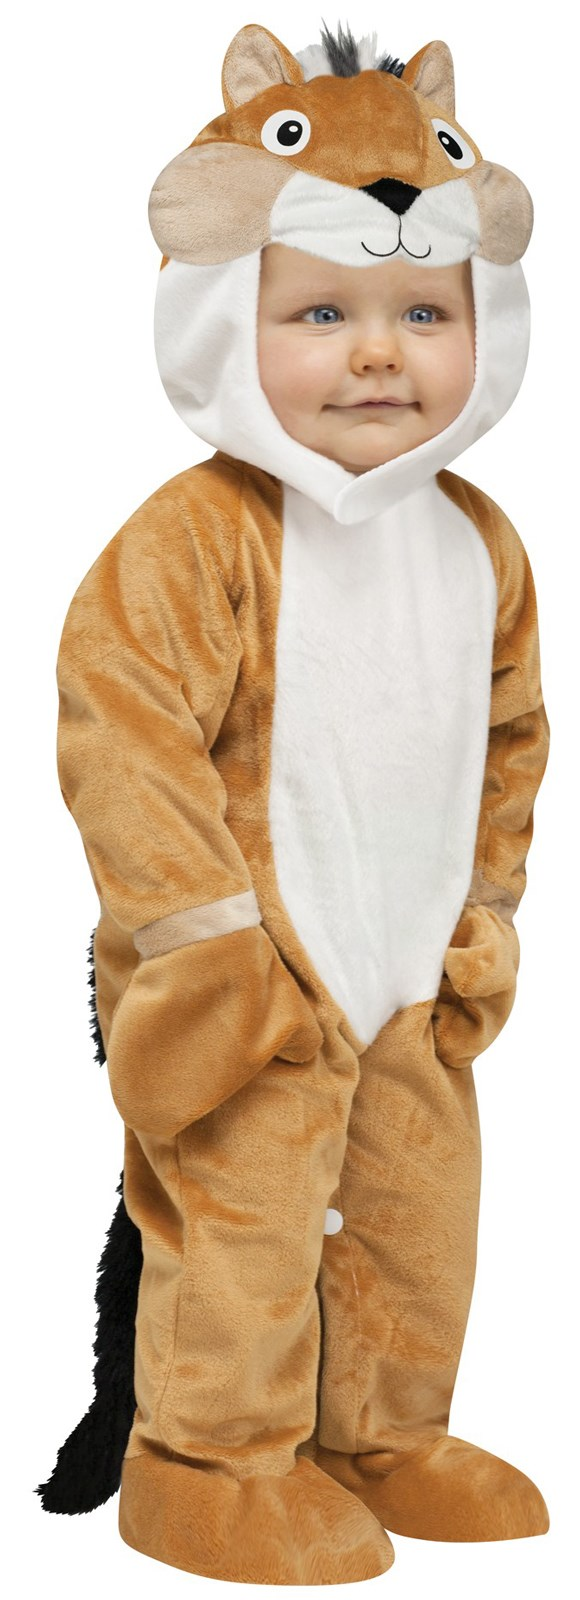 Toddler Chipper Chipmunk Costume | BuyCostumes.com